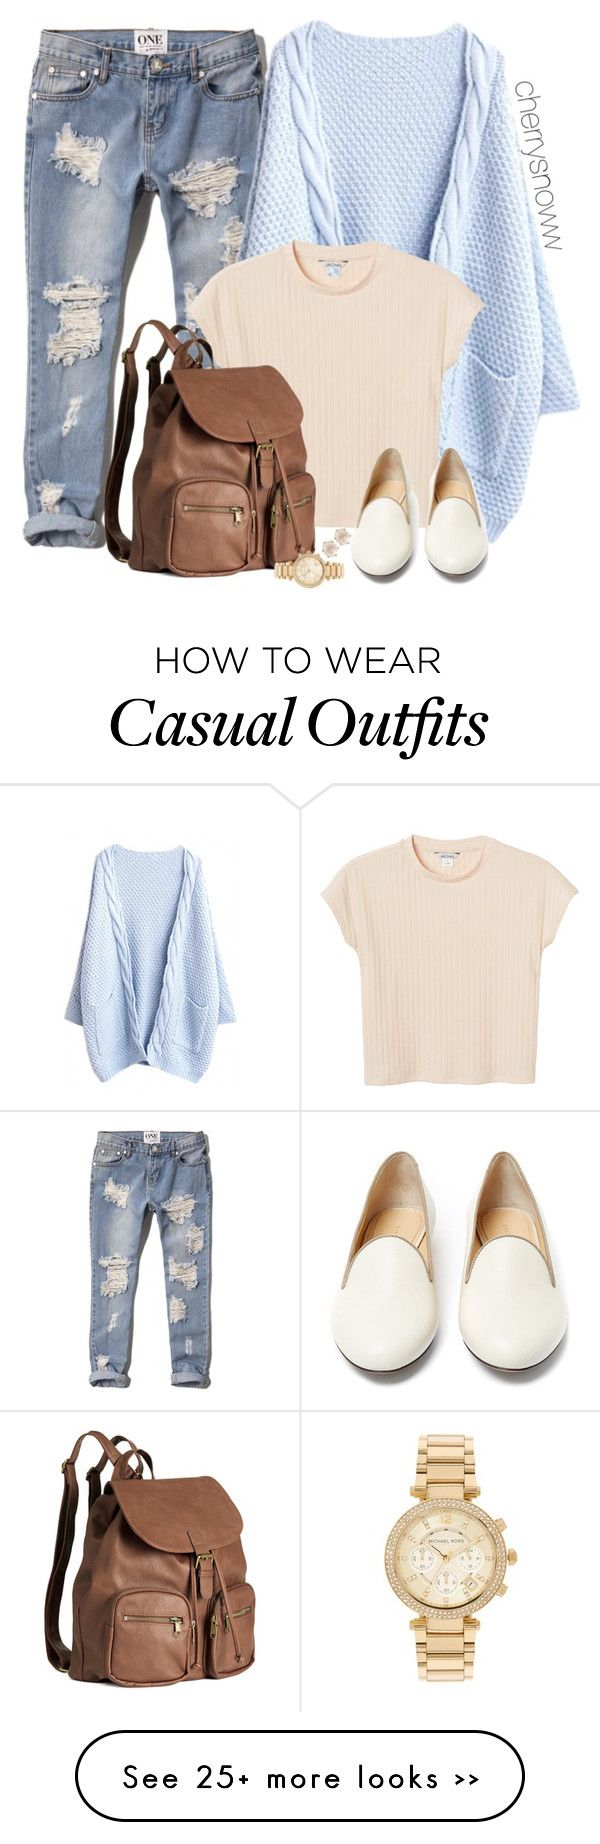 """""""Casual chic"""" by cherrysnoww on Polyvore featuring Abercrombie & Fitch, Monki, Charlotte Olympia, H&M, Michael Kors, Anna Sheffield, casual, chic and CasualChic"""